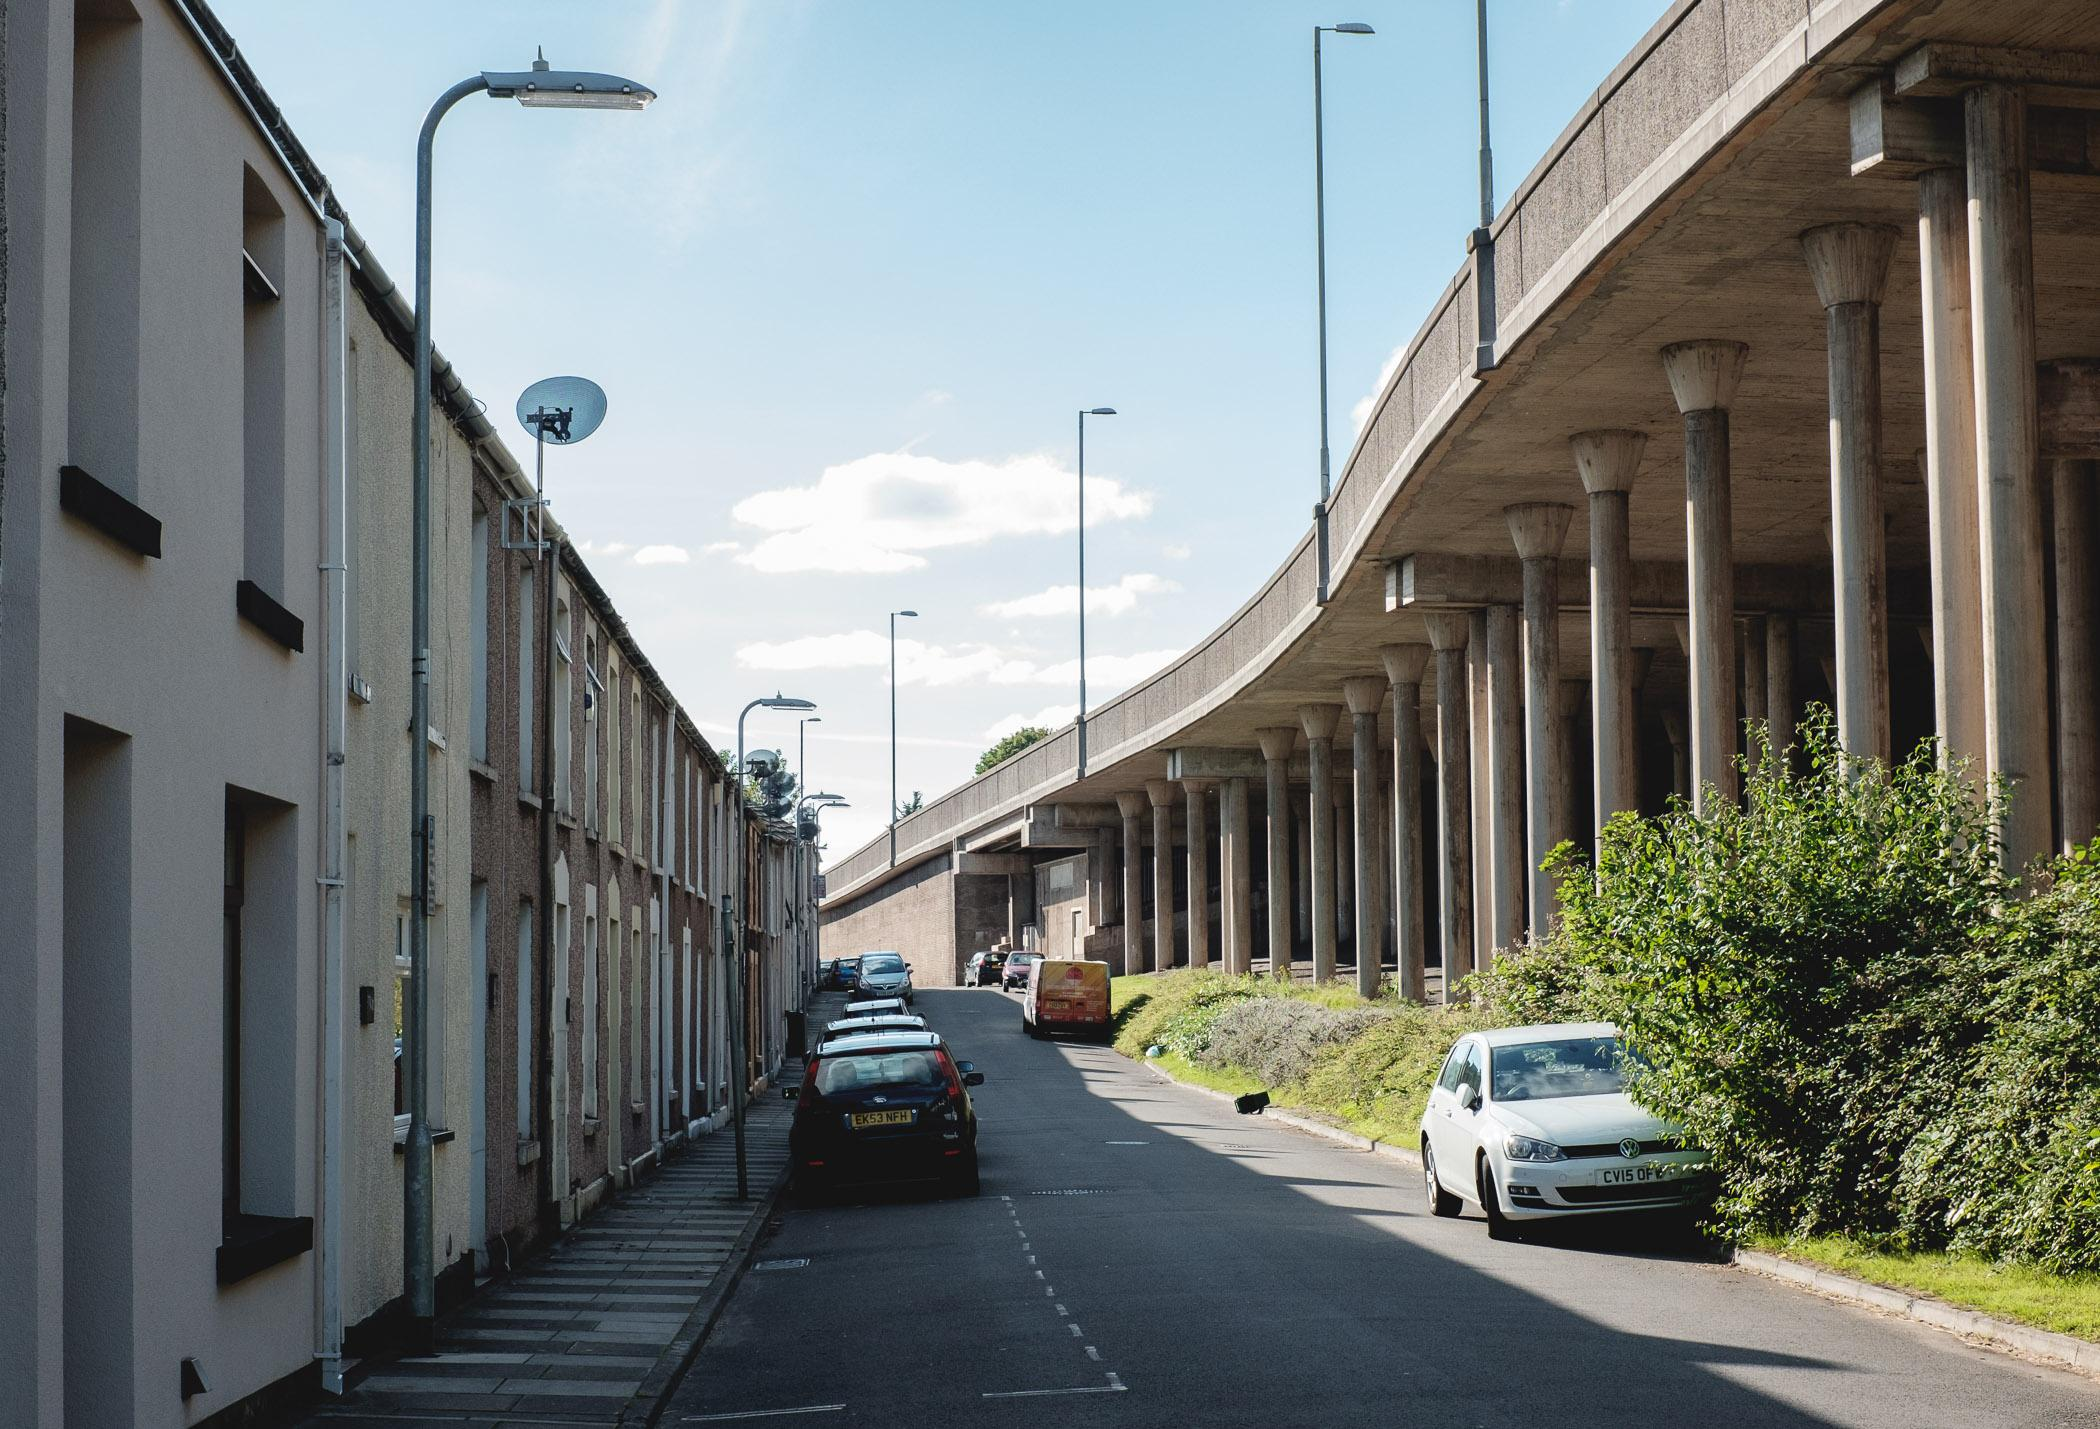 Llewellyn Street, Port Talbot. Half of the street was demolished during the construction of the M4 motorway in the 1960s and residents were relocated to new council estates on the other side of town.